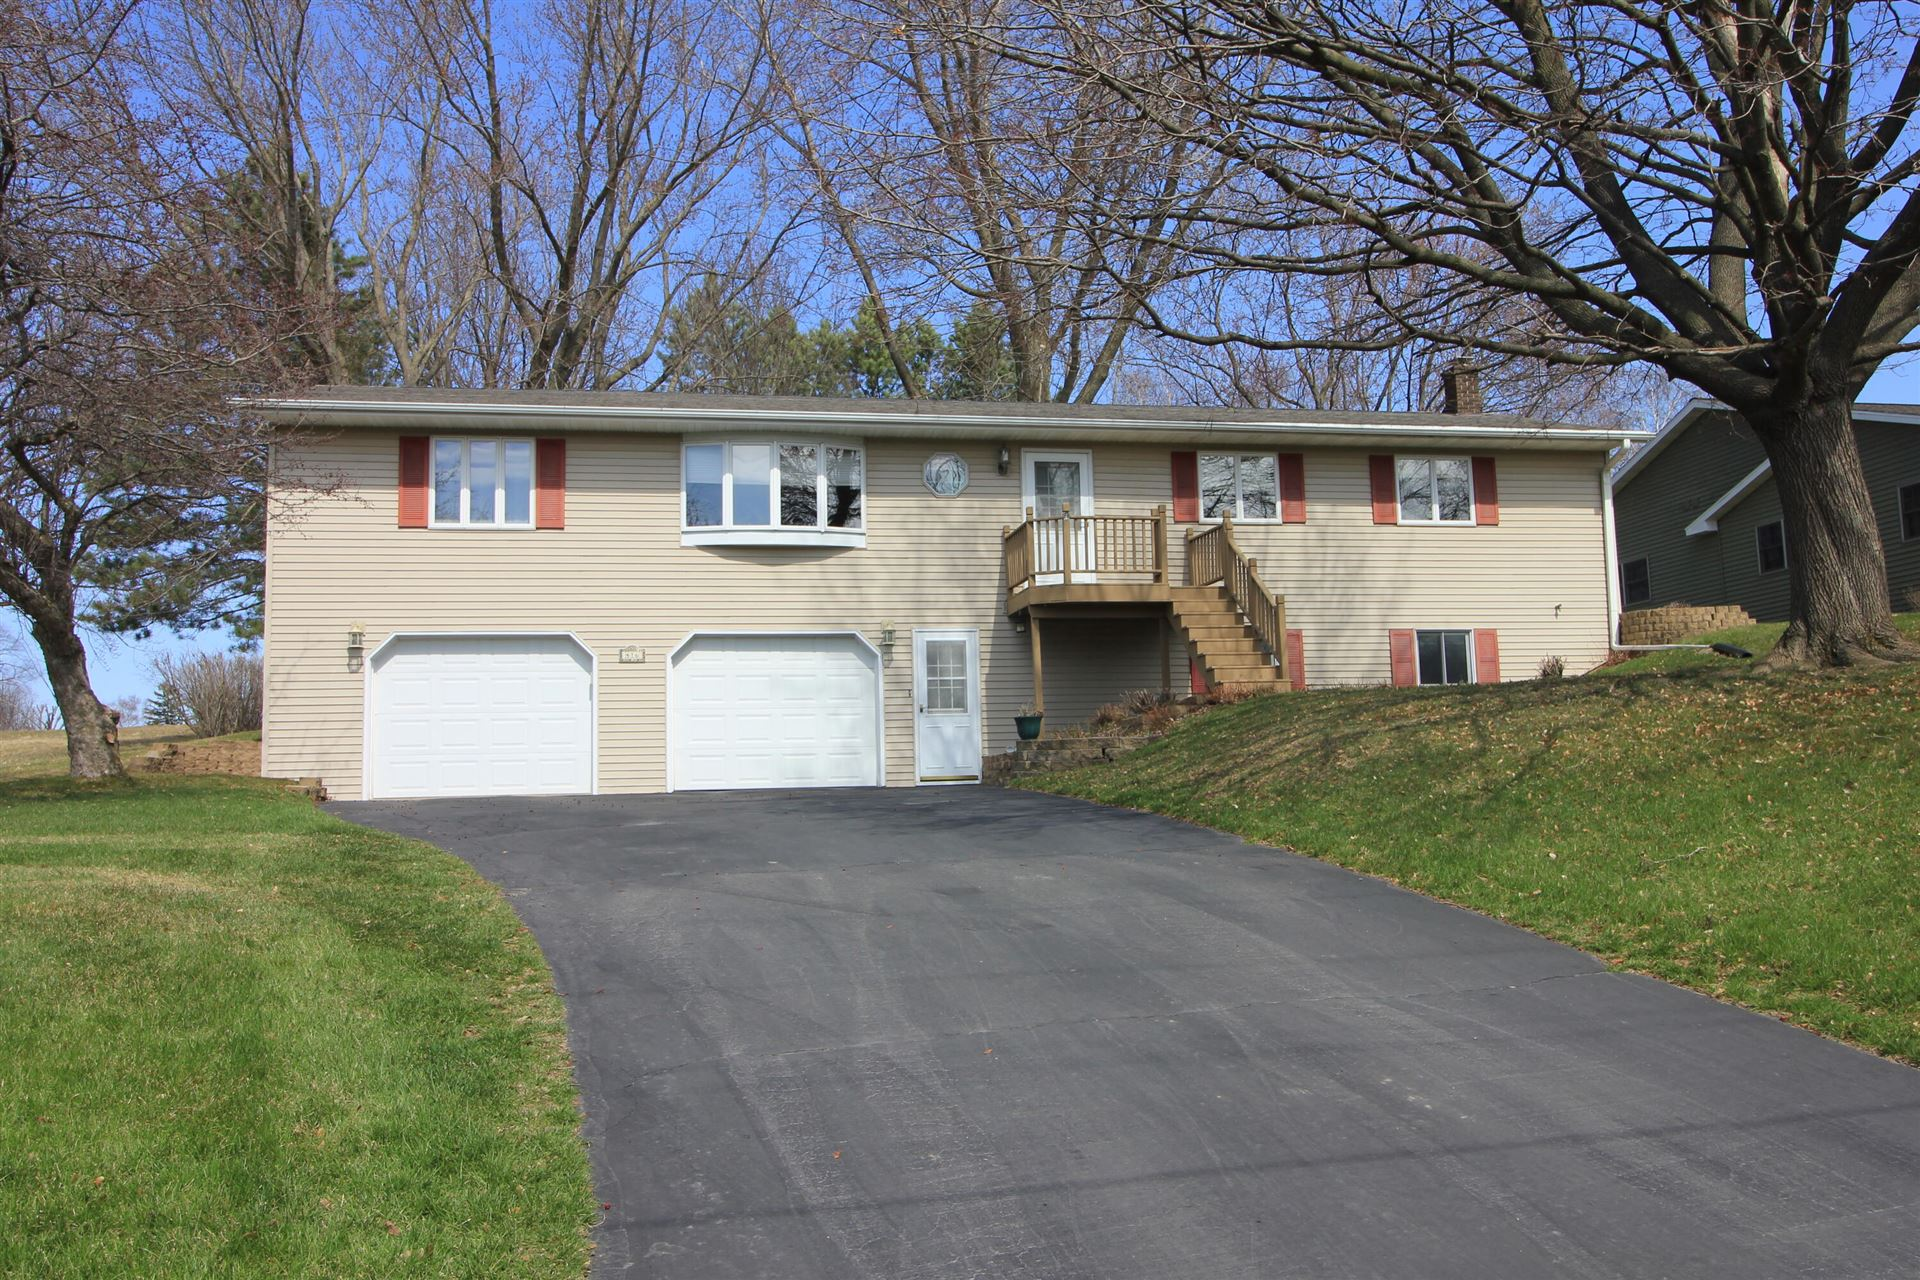 416 E State St, Westby, WI 54667 - MLS#: 1734084